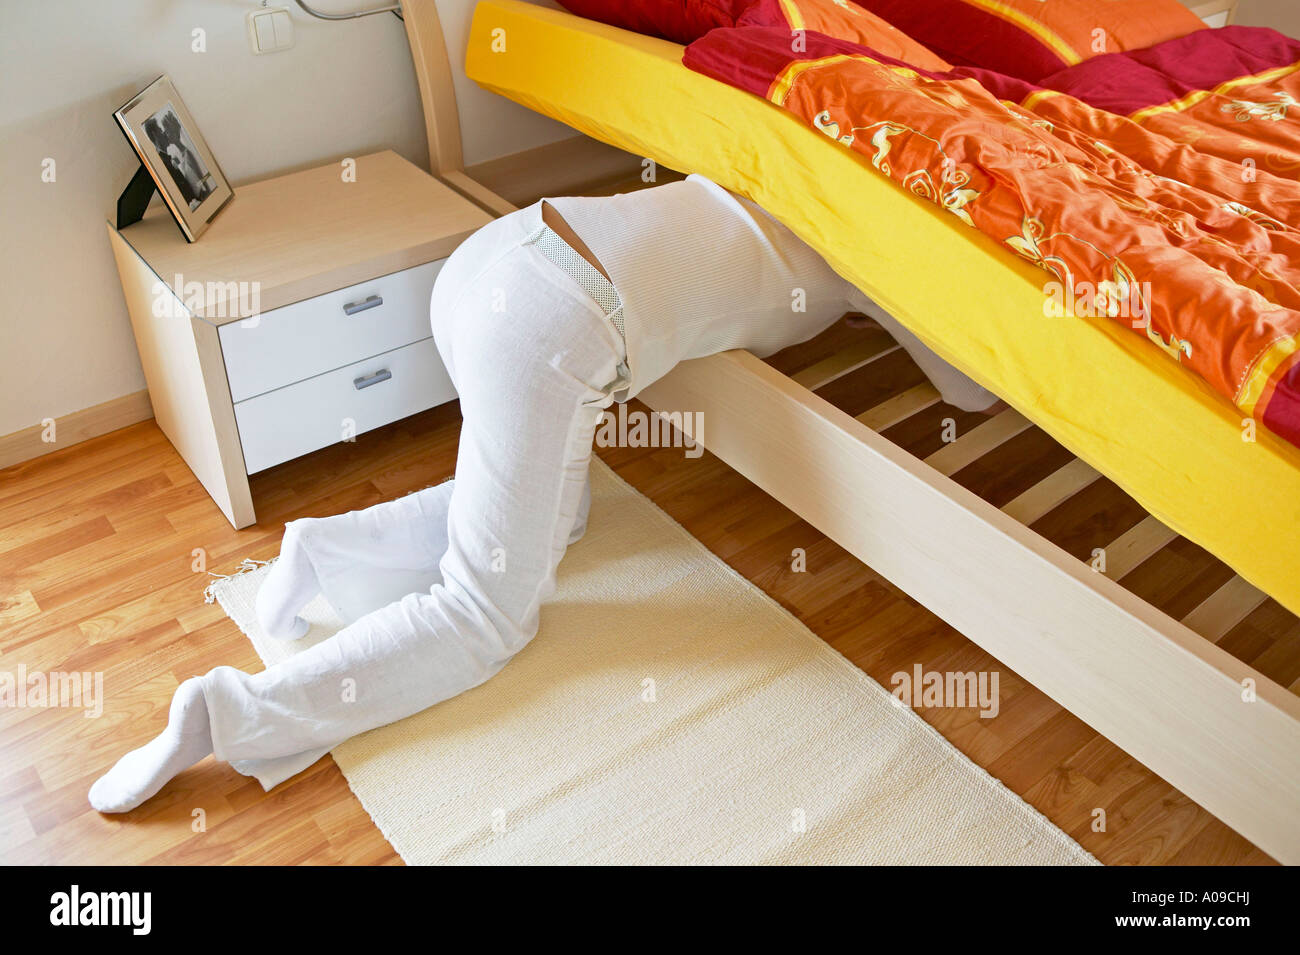 Frau sucht etwas unter dem Bett, woman searching something under the bed - Stock Image